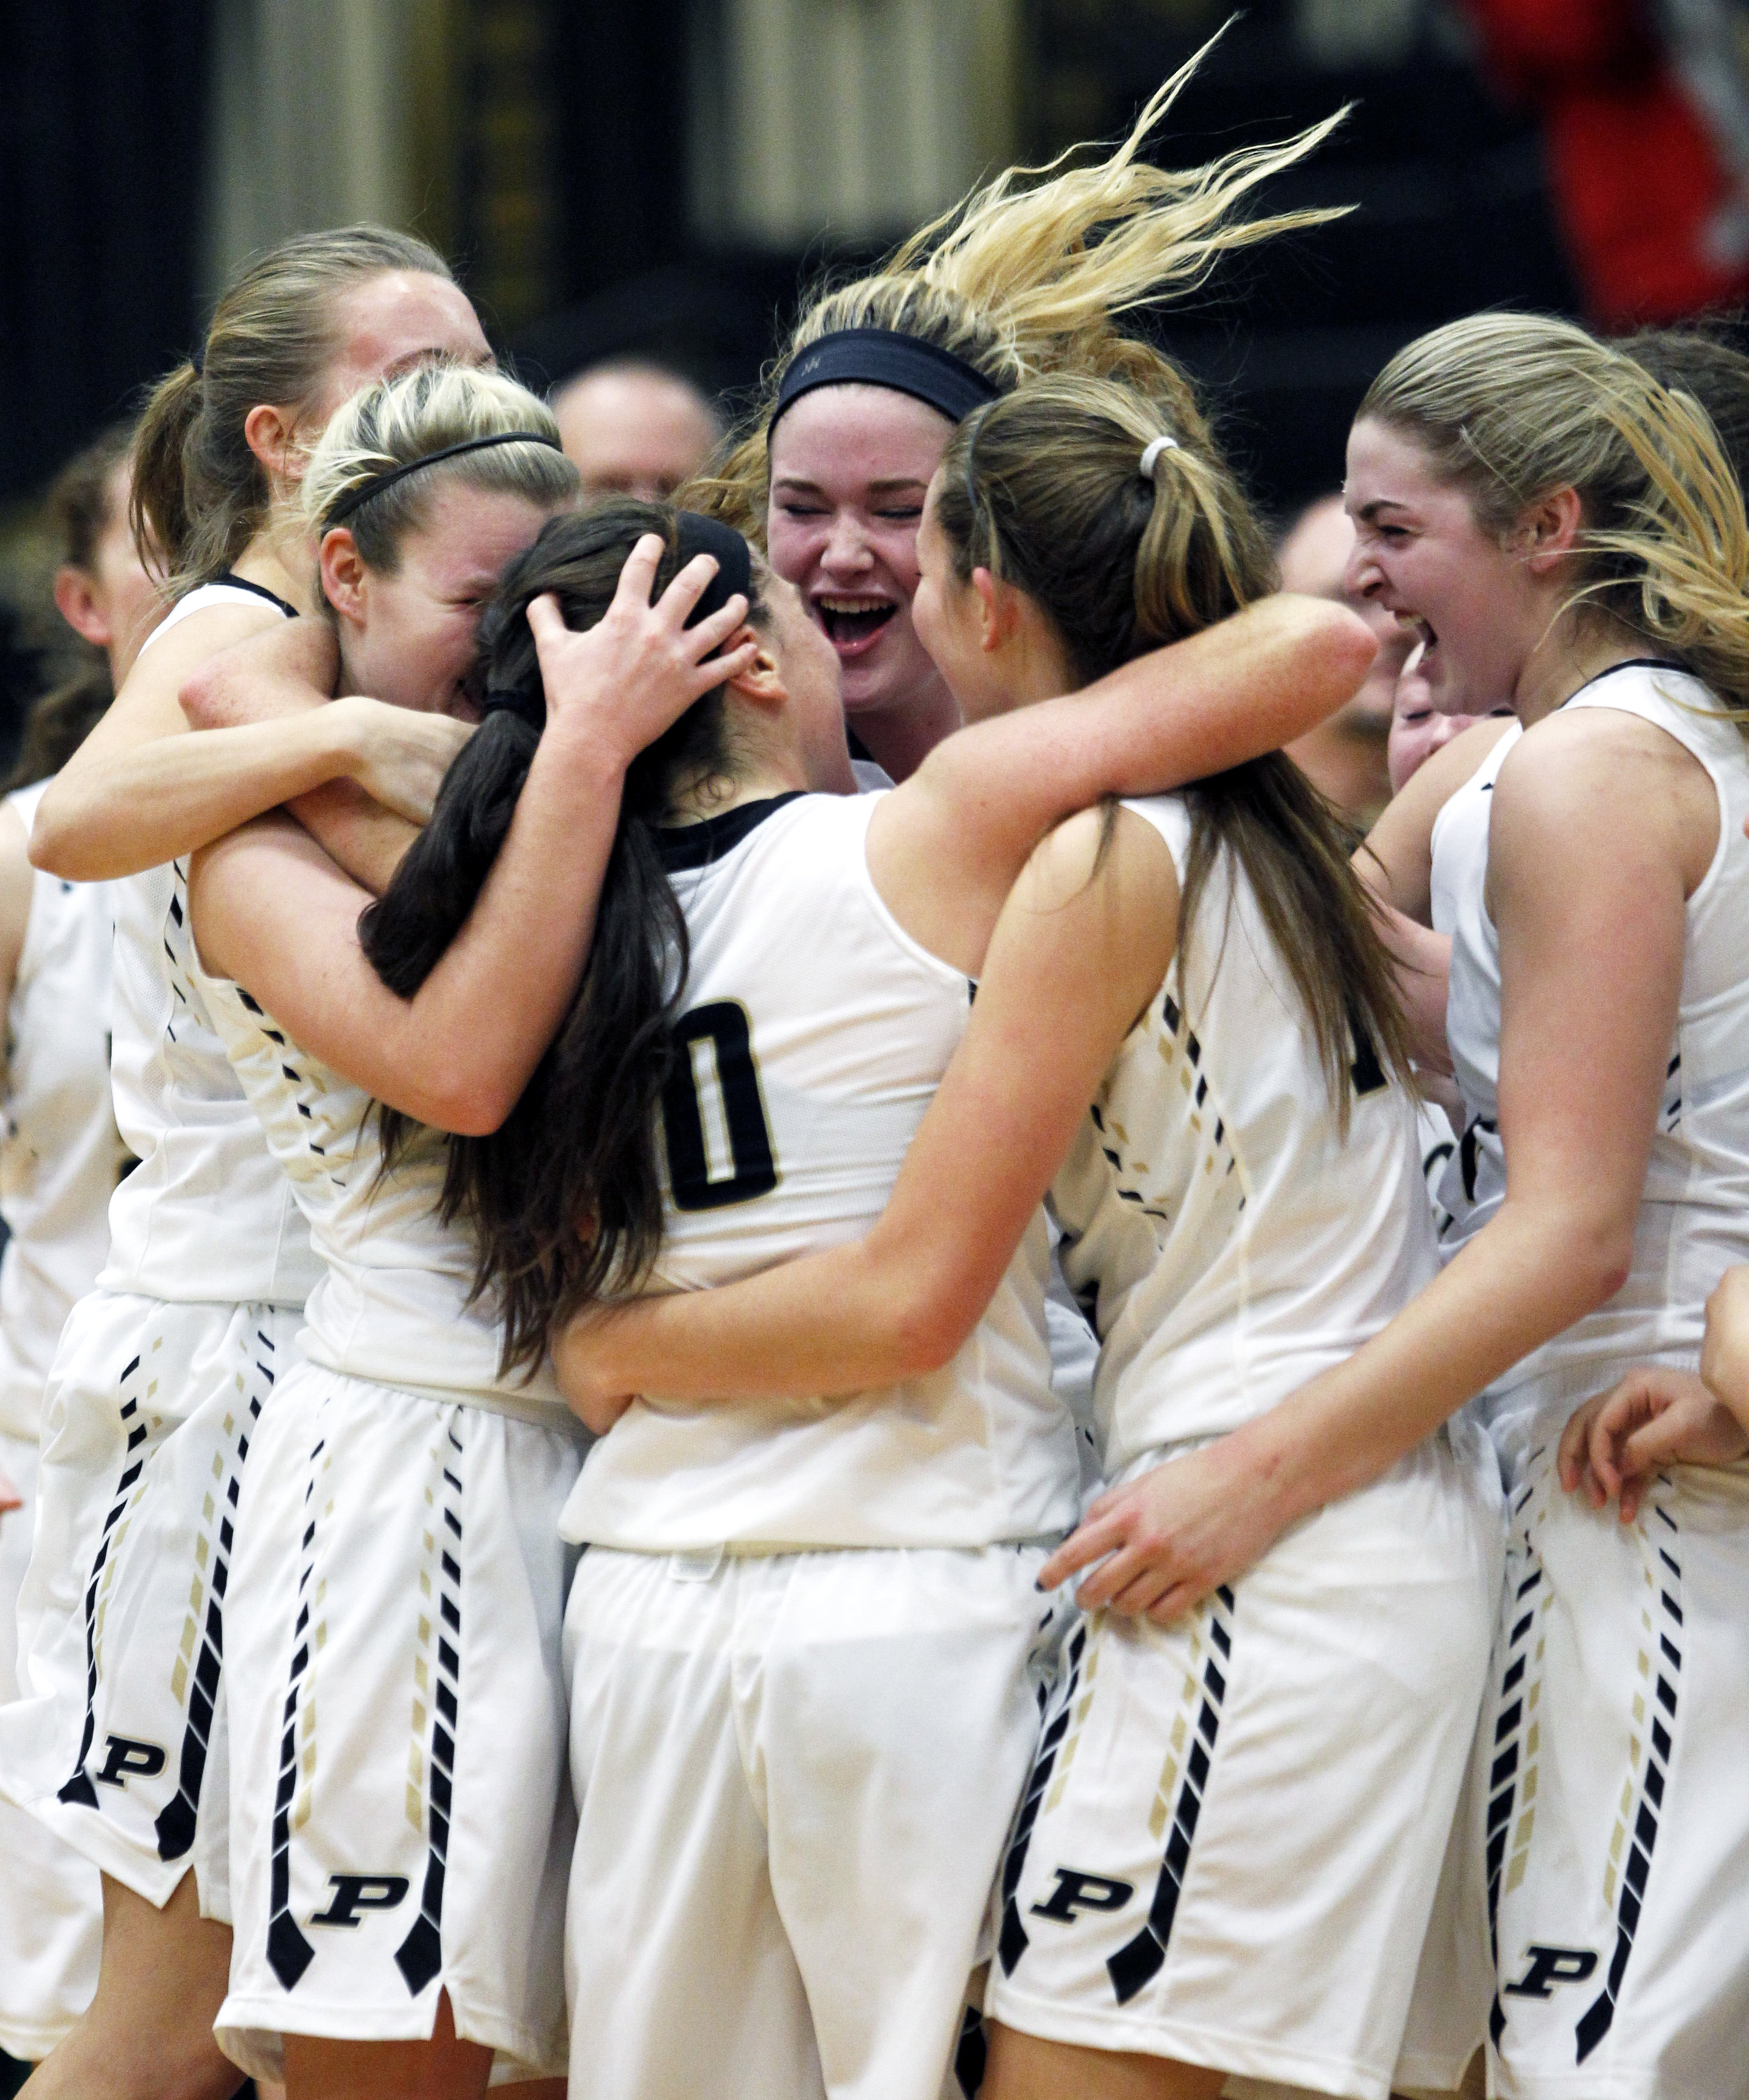 The Perrysburg High School varsity girl's basketball team celebrates the 3-point basket scored by guard Kristina DeMarco (10) at the buzzer sending the girl's varsity basketball game against Sylvania Northview High School into it's first overtime at Perrysburg High School on Thursday, Dec. 8, 2016. Perrysburg won the game double overtime 58-53.